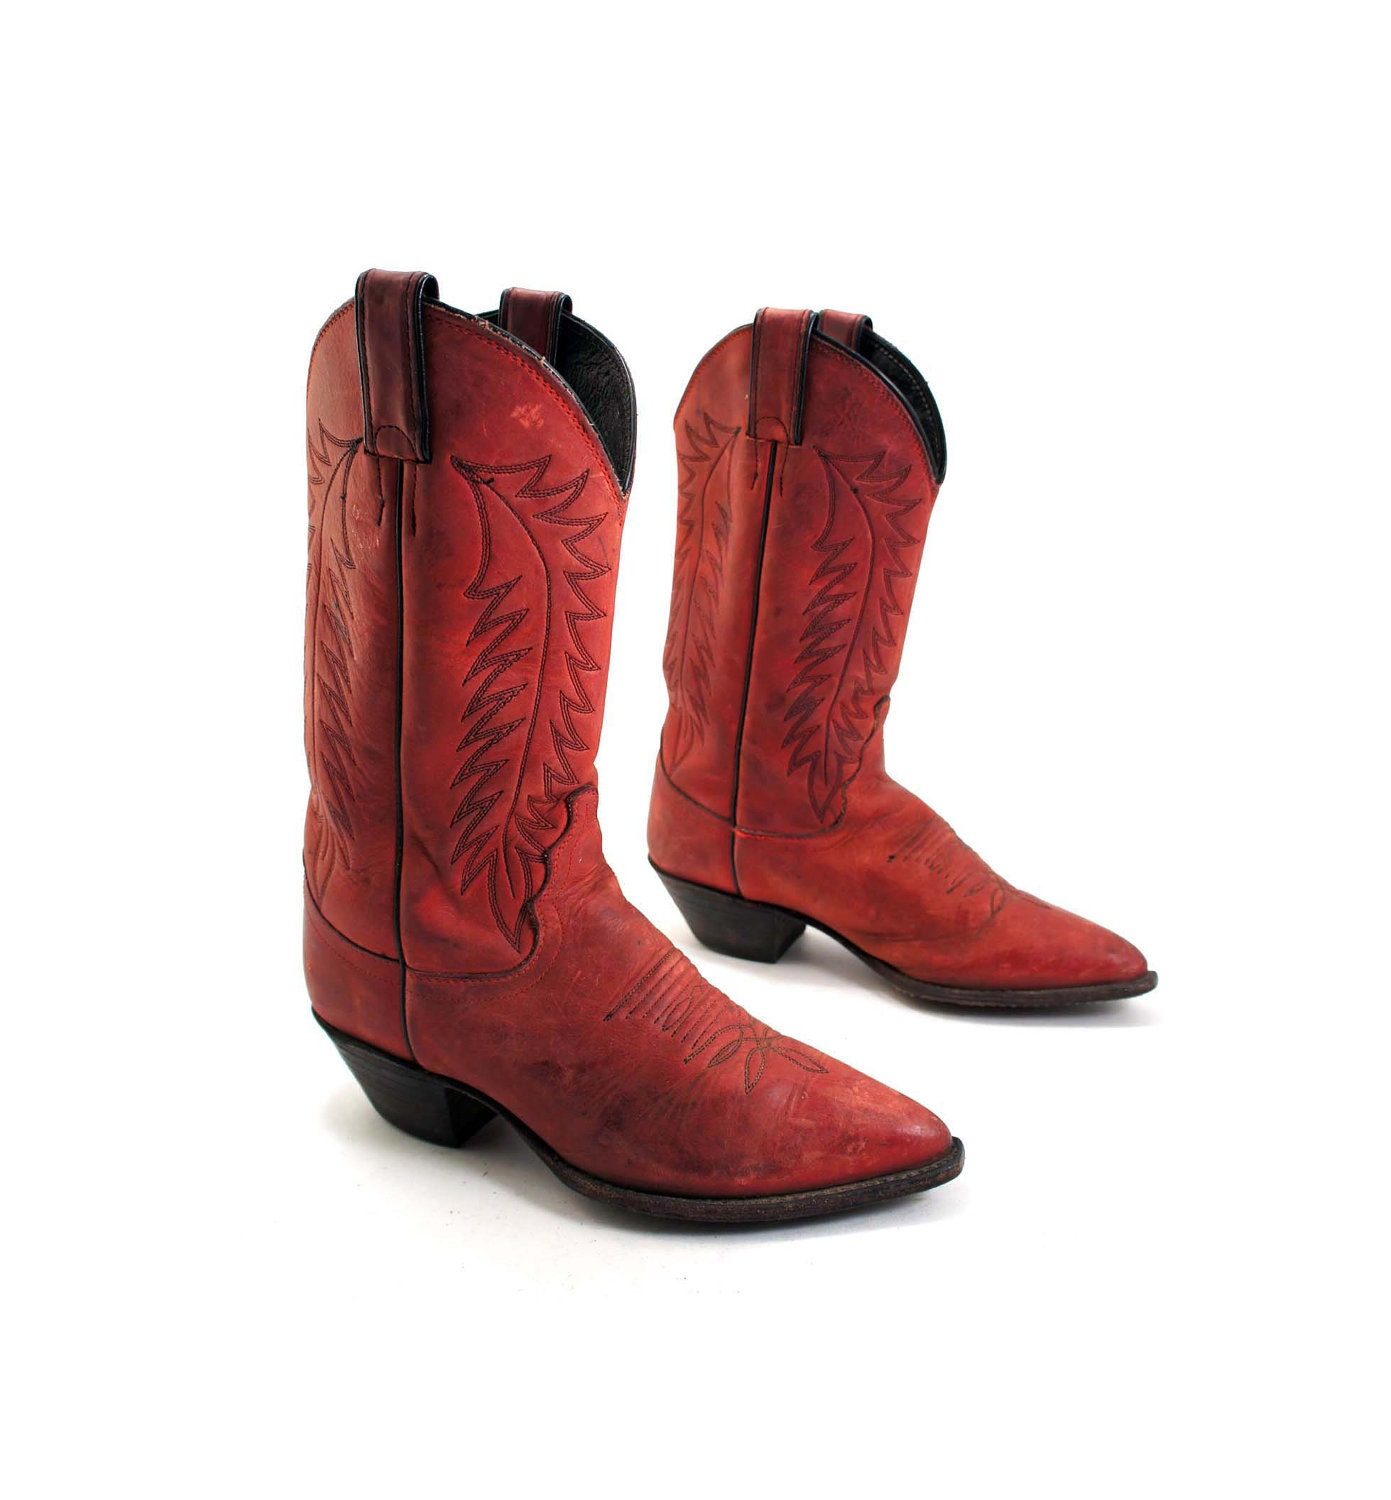 Fantastic Womenu0026#39;s Ariatu00ae 11u0026quot; Hotwire Boots Brown / Red - 216119 Cowboy U0026 Western Boots At Sportsmanu0026#39;s Guide